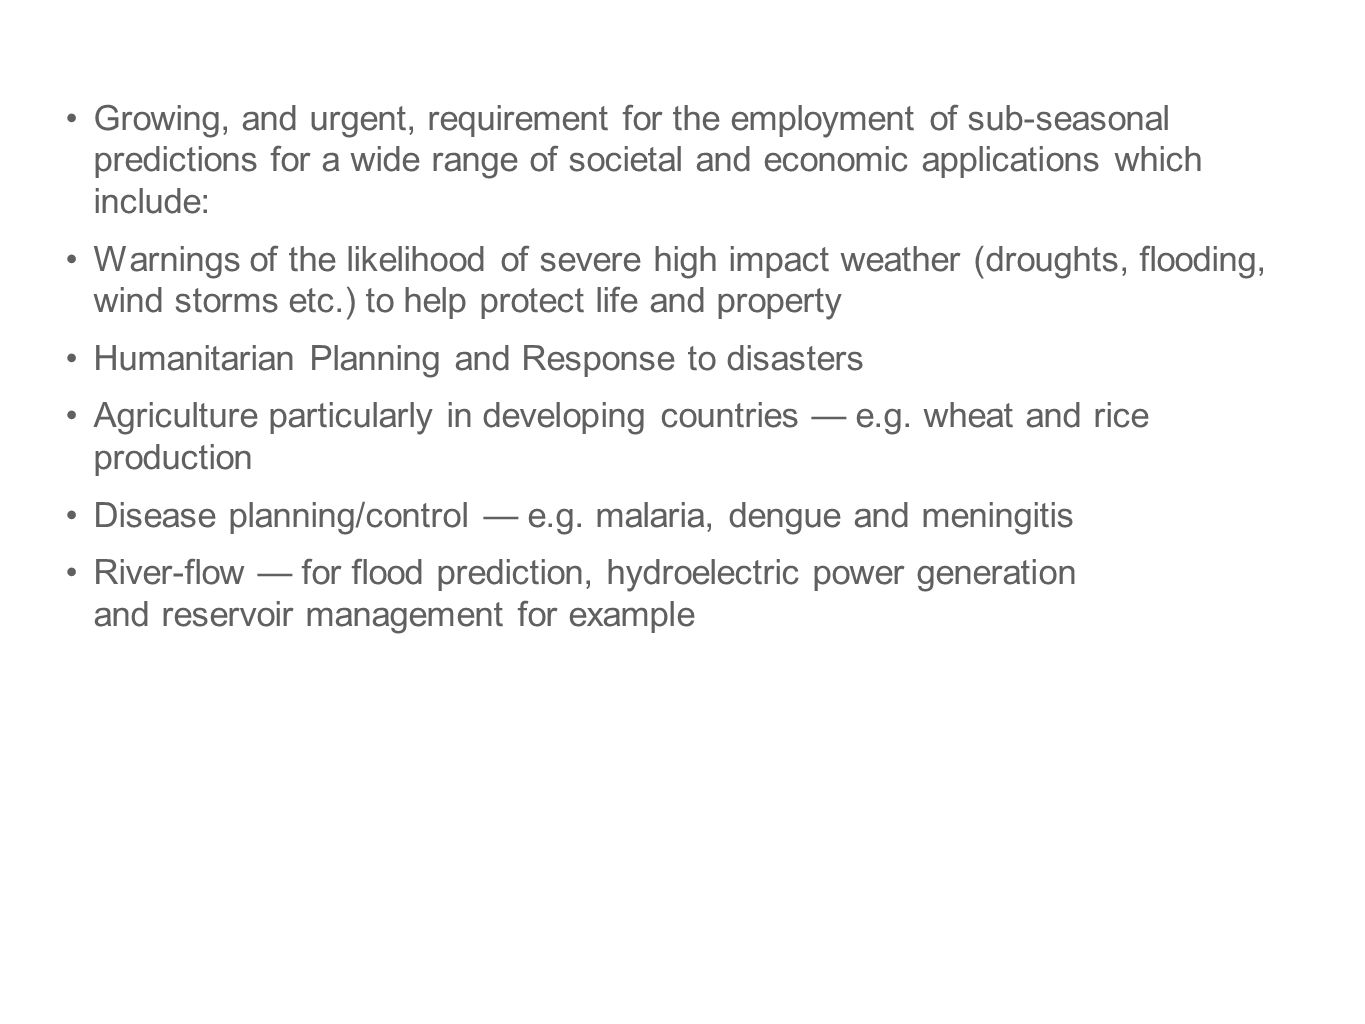 Growing, and urgent, requirement for the employment of sub-seasonal predictions for a wide range of societal and economic applications which include: